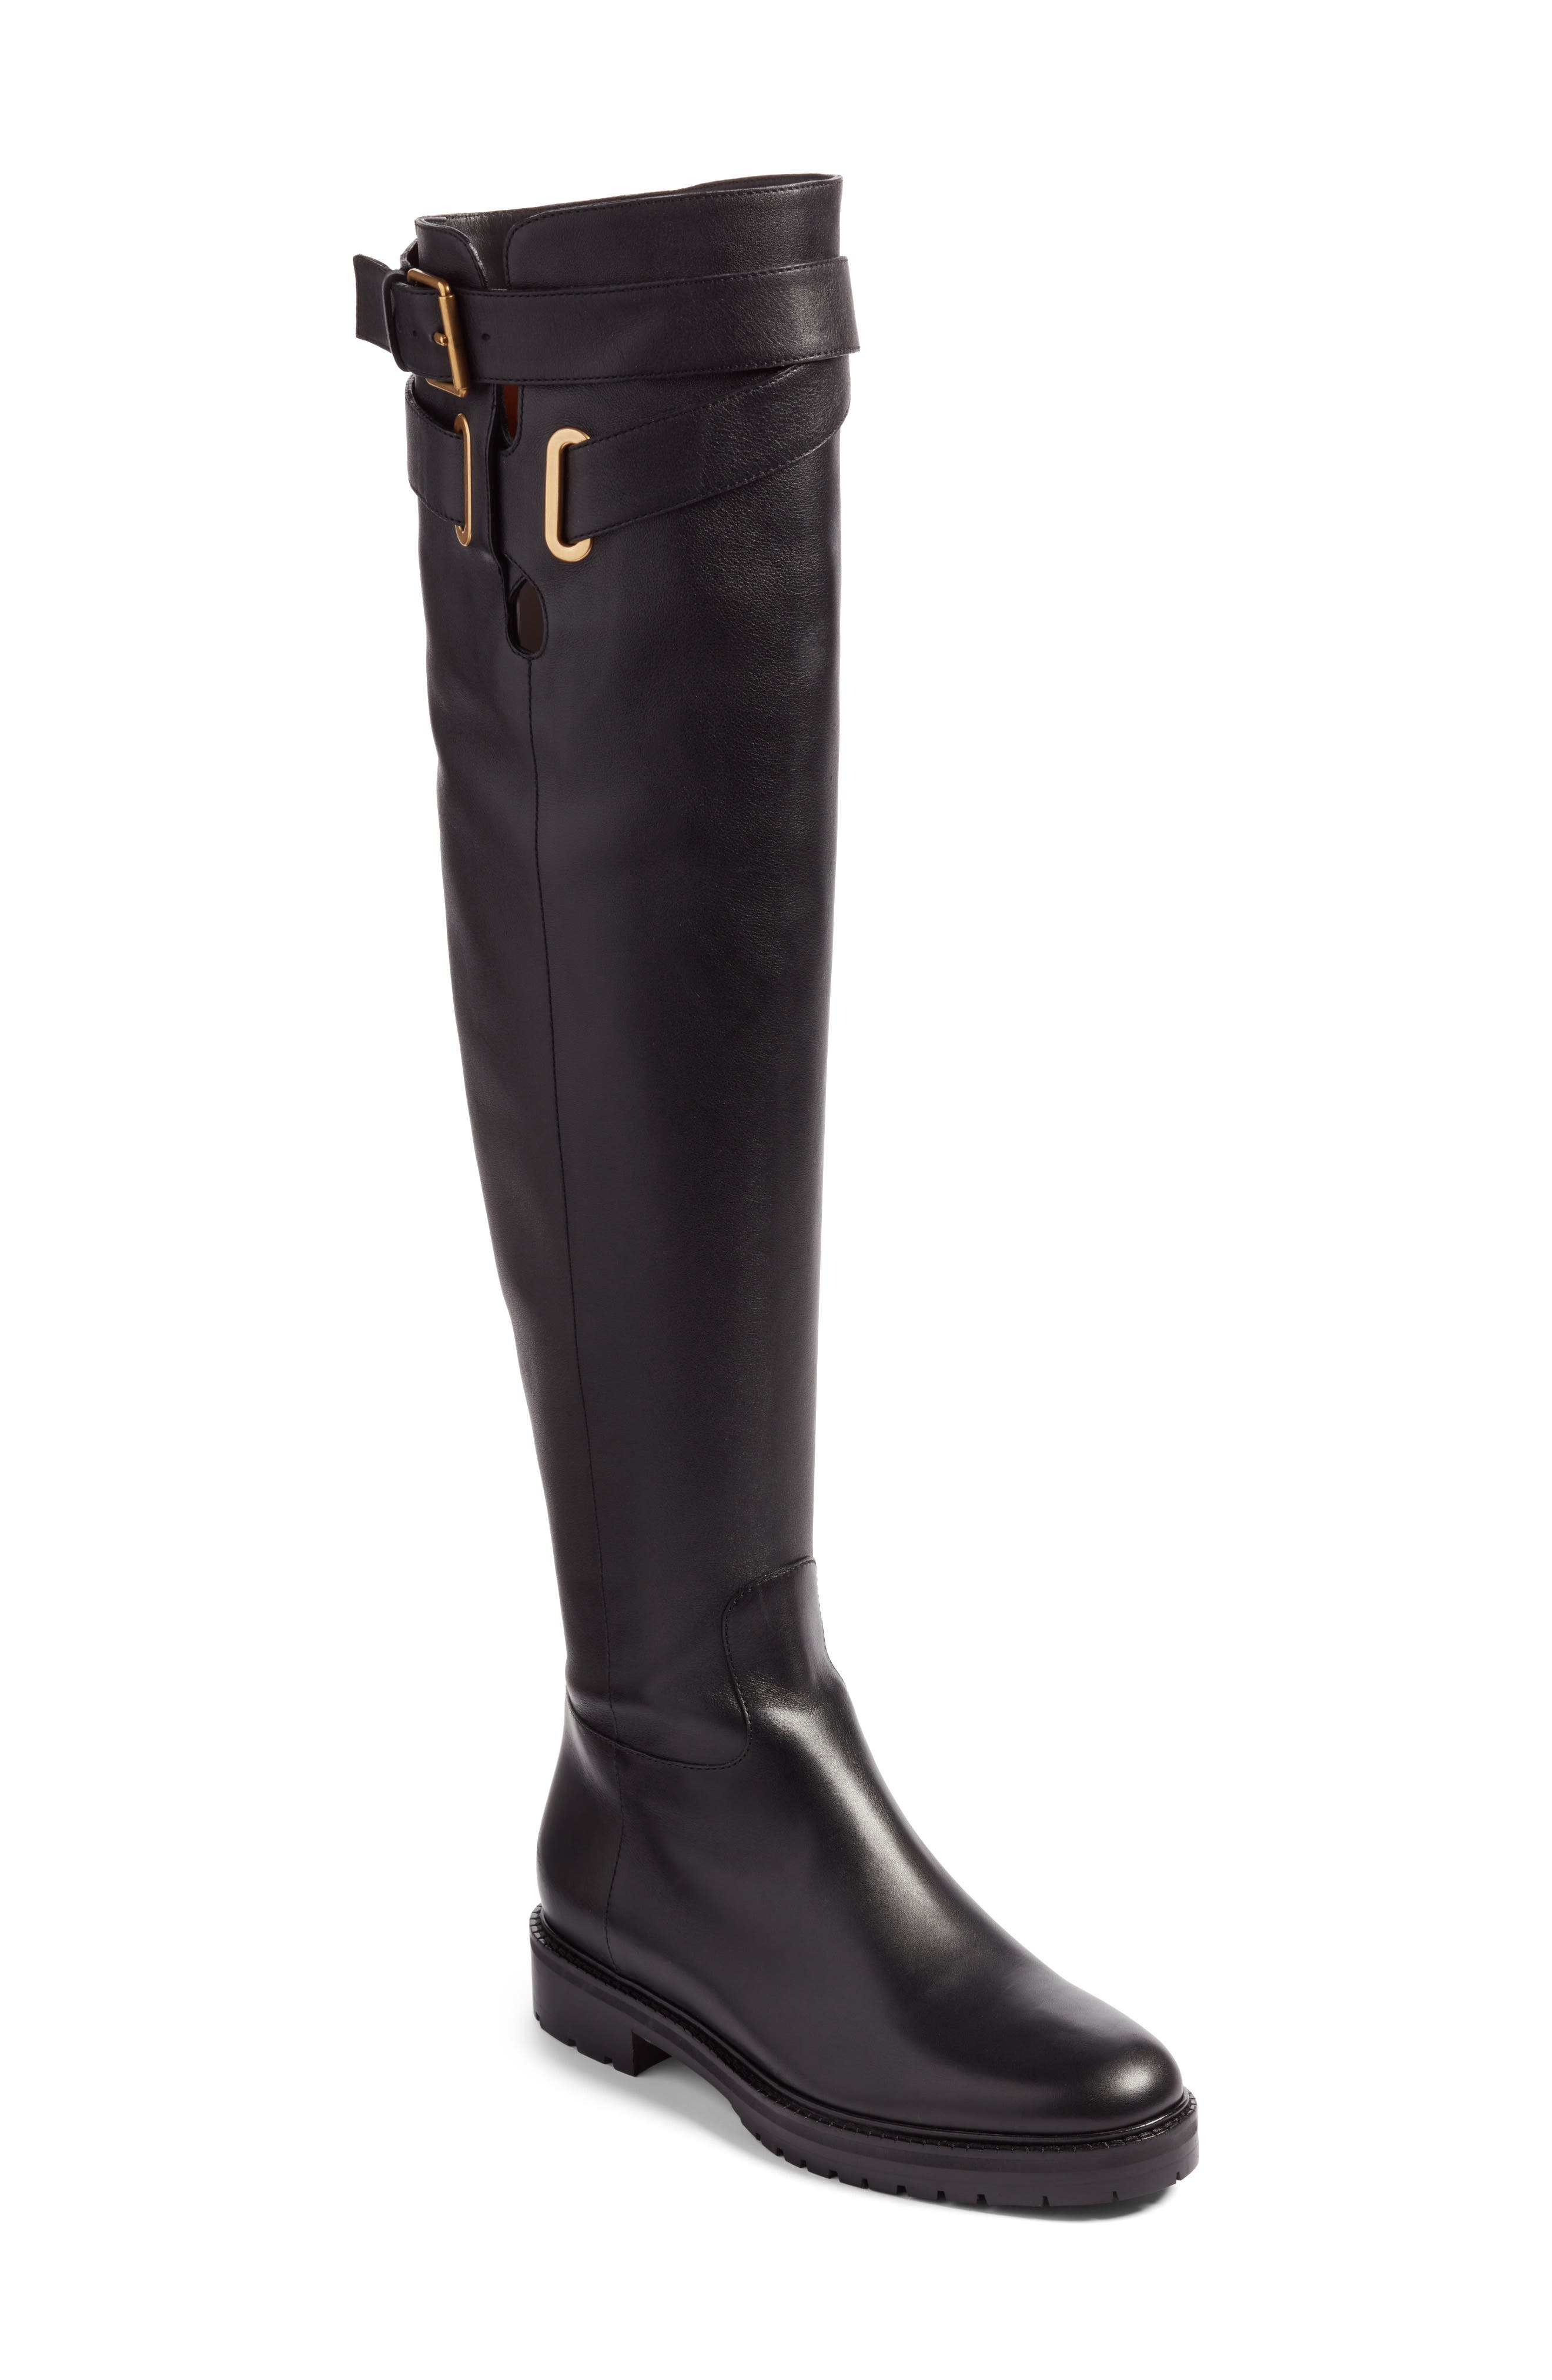 Bowrap Over the Knee Boot,                             Main thumbnail 1, color,                             001